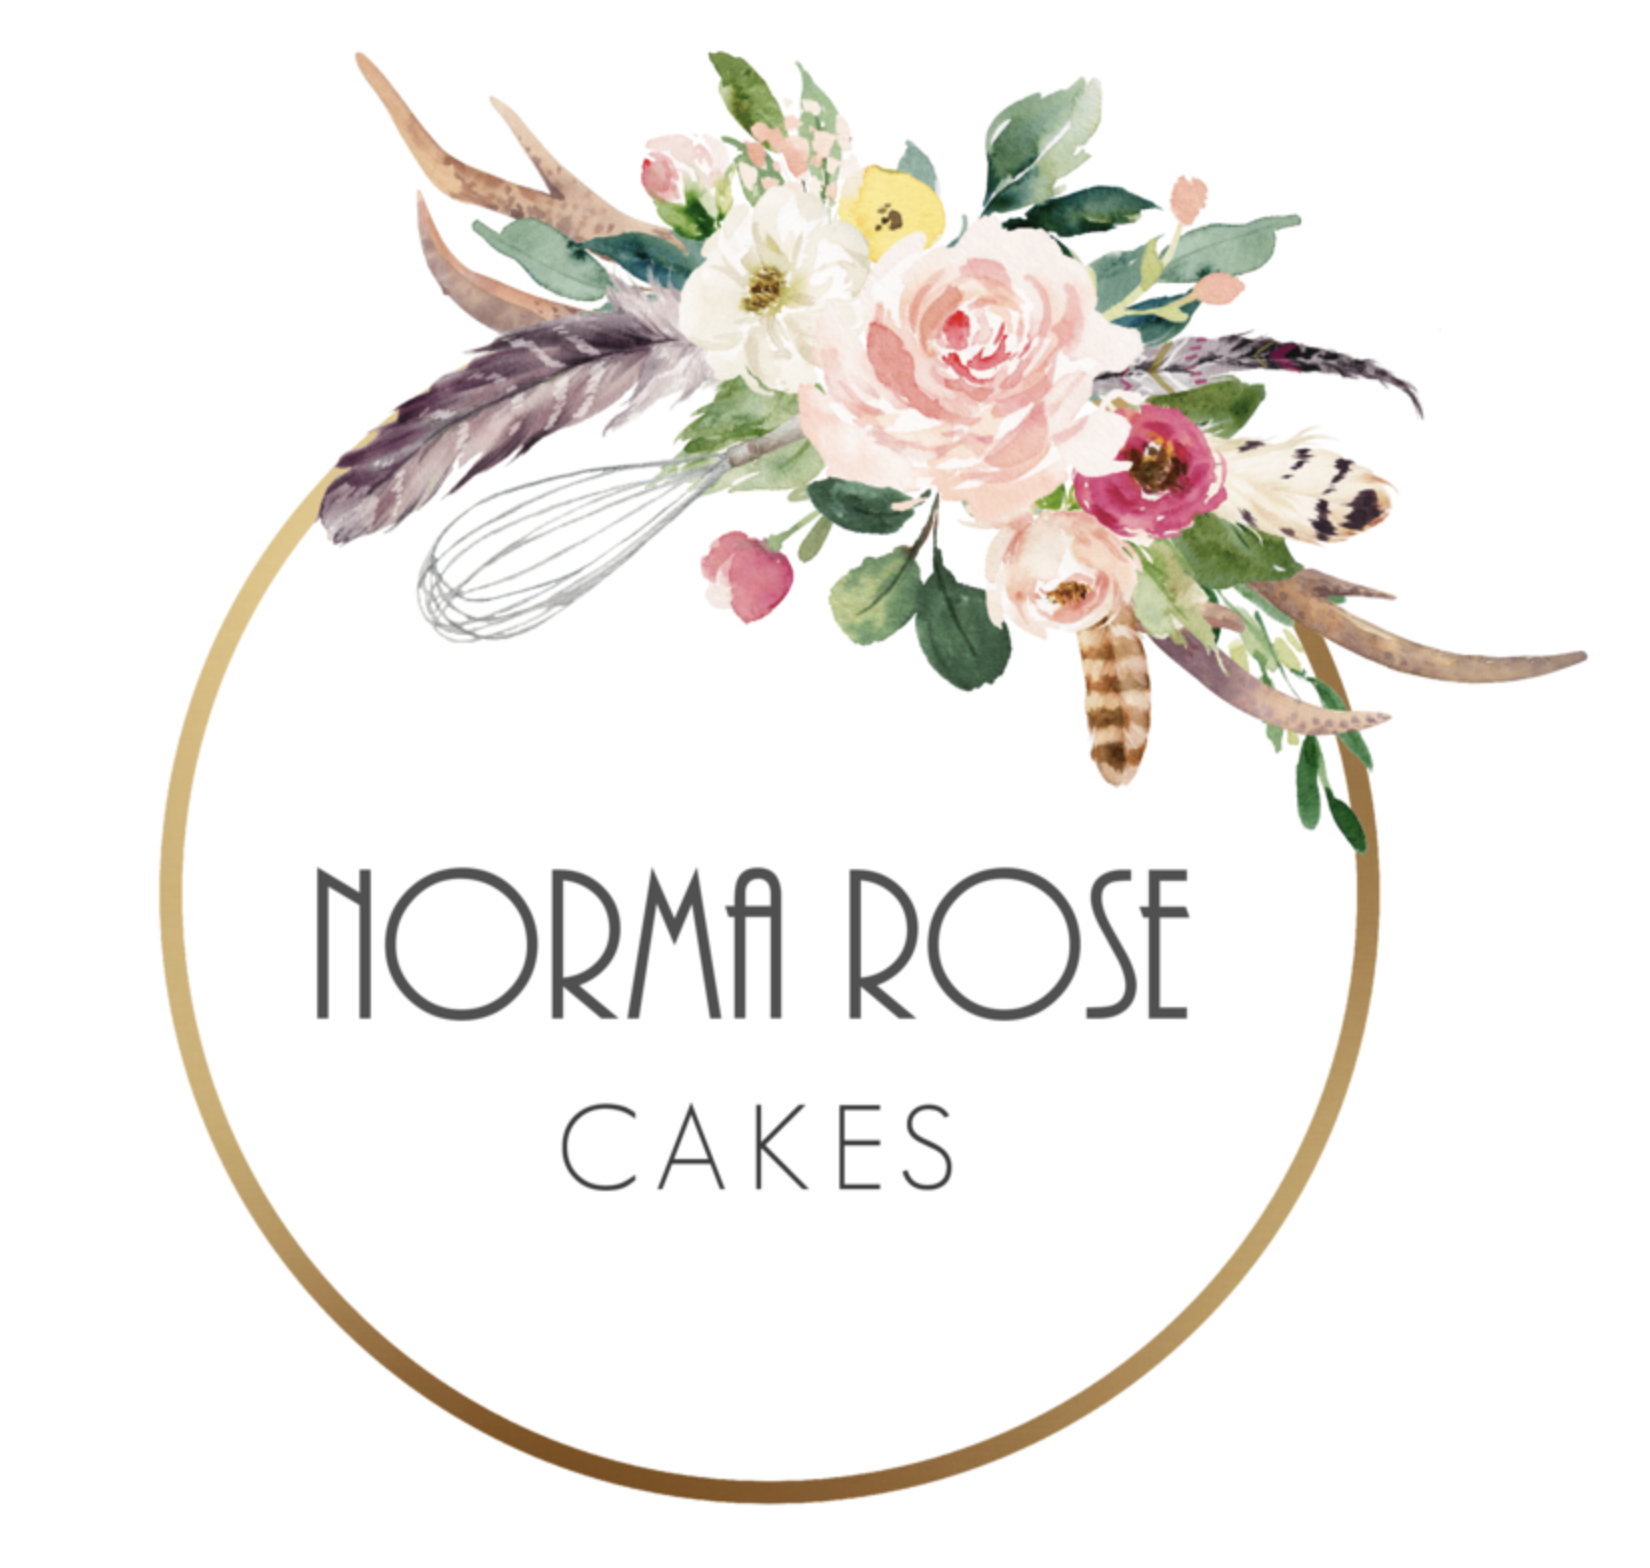 LOGO - Norma Rose Cakes